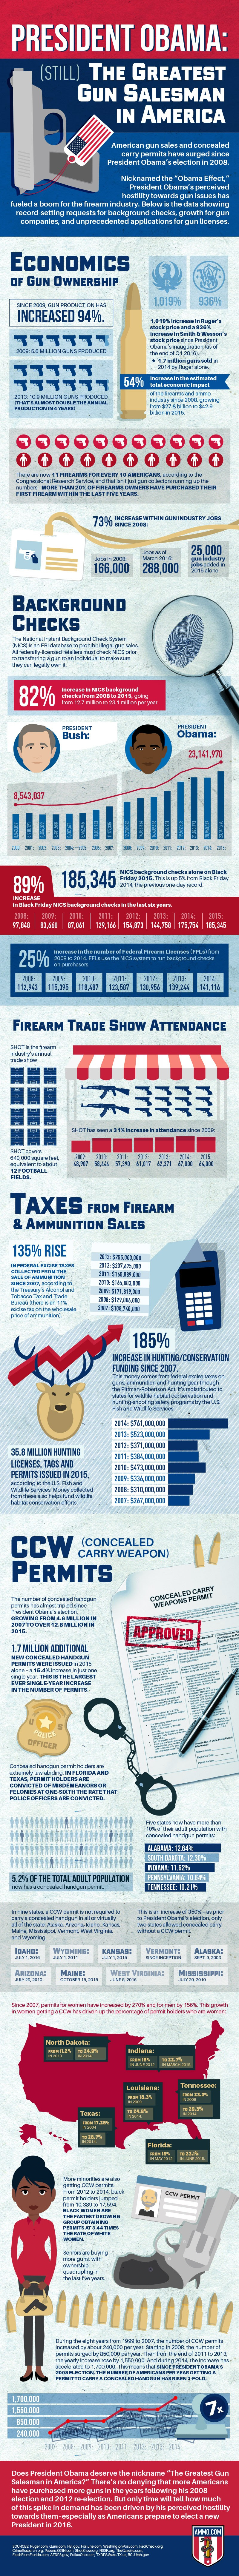 President Obama: (Still) The Greatest Gun Salesman in America [INFOGRAPHIC]